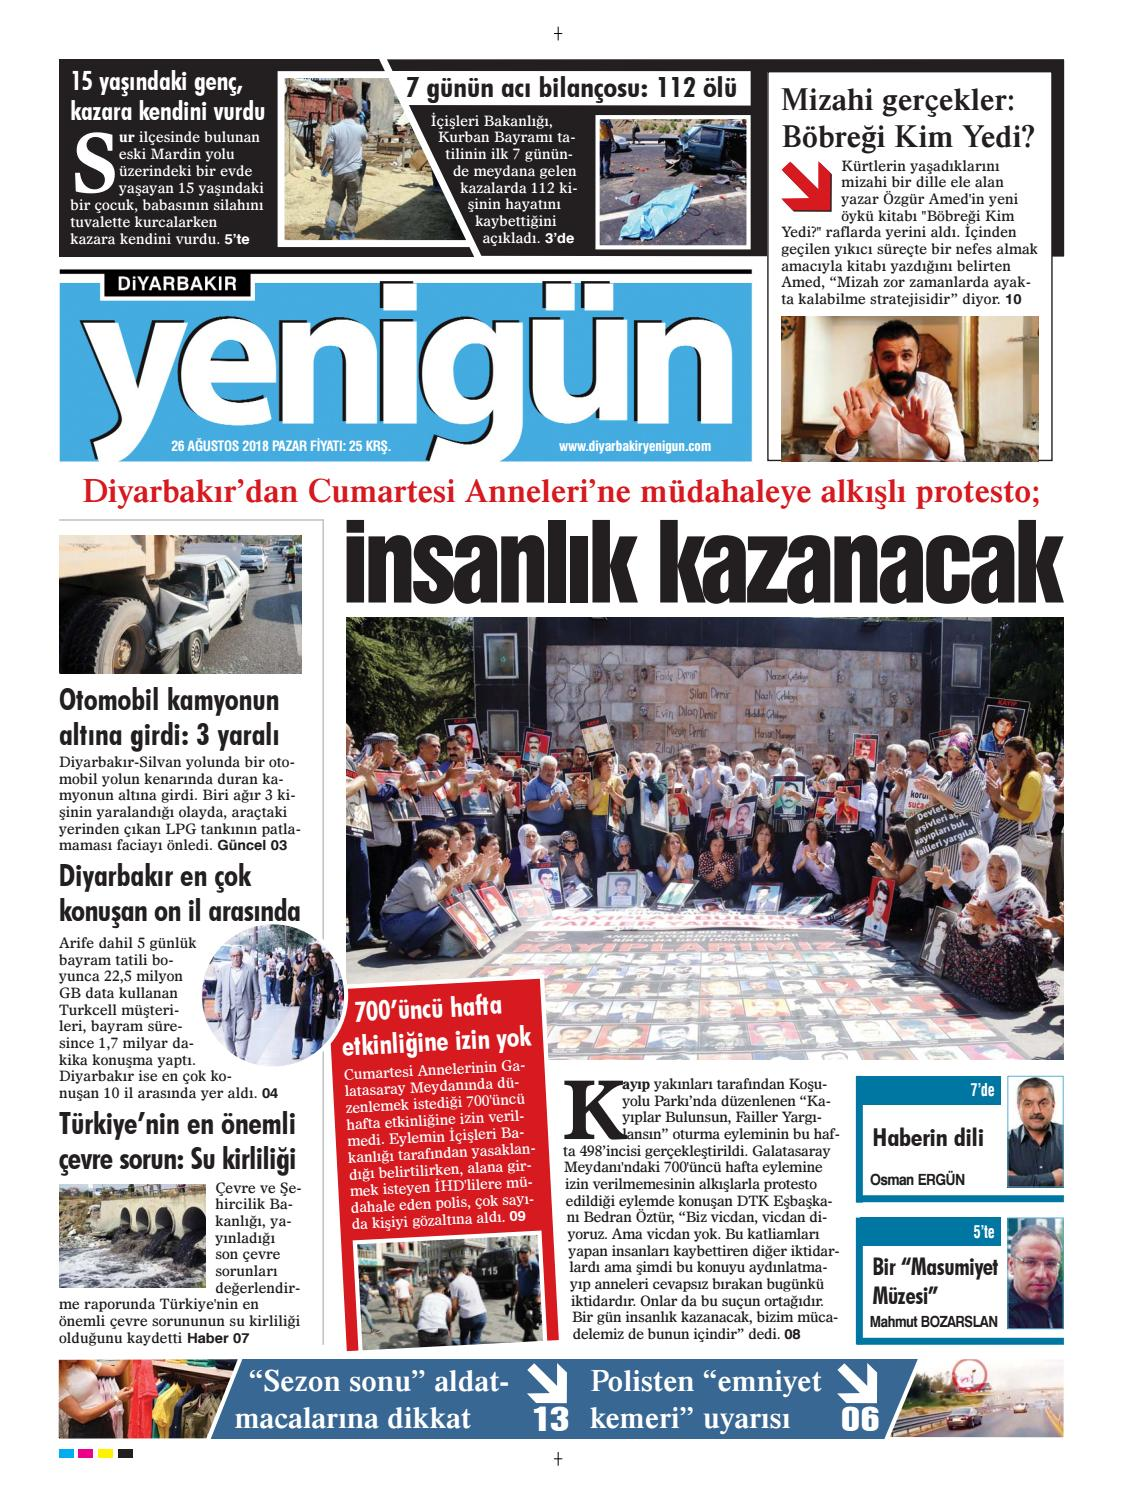 26 Agustos 2018 Pazar By Osman Ergun Issuu